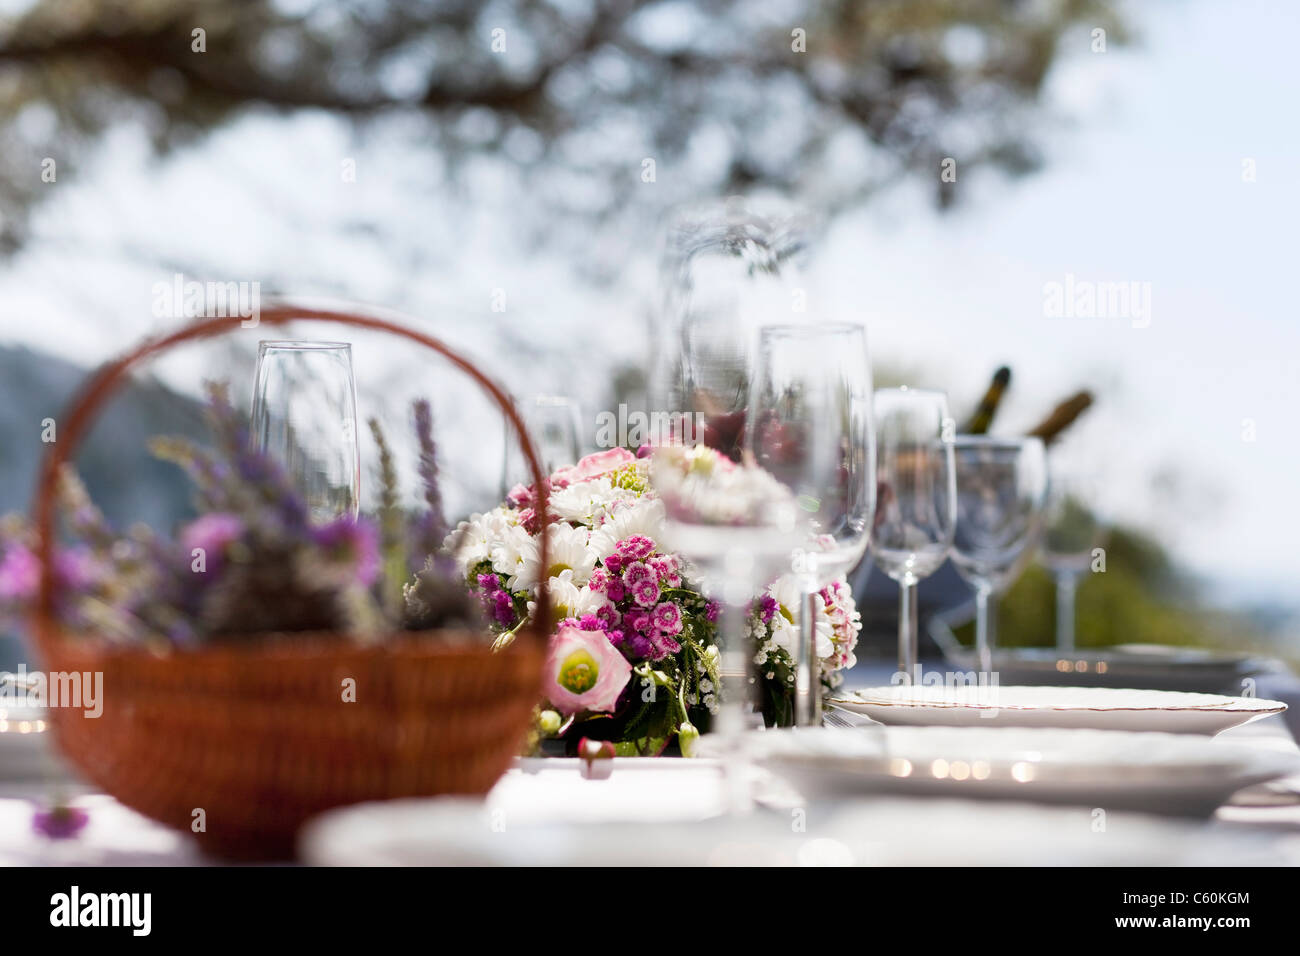 Table set with flowers and flatware - Stock Image